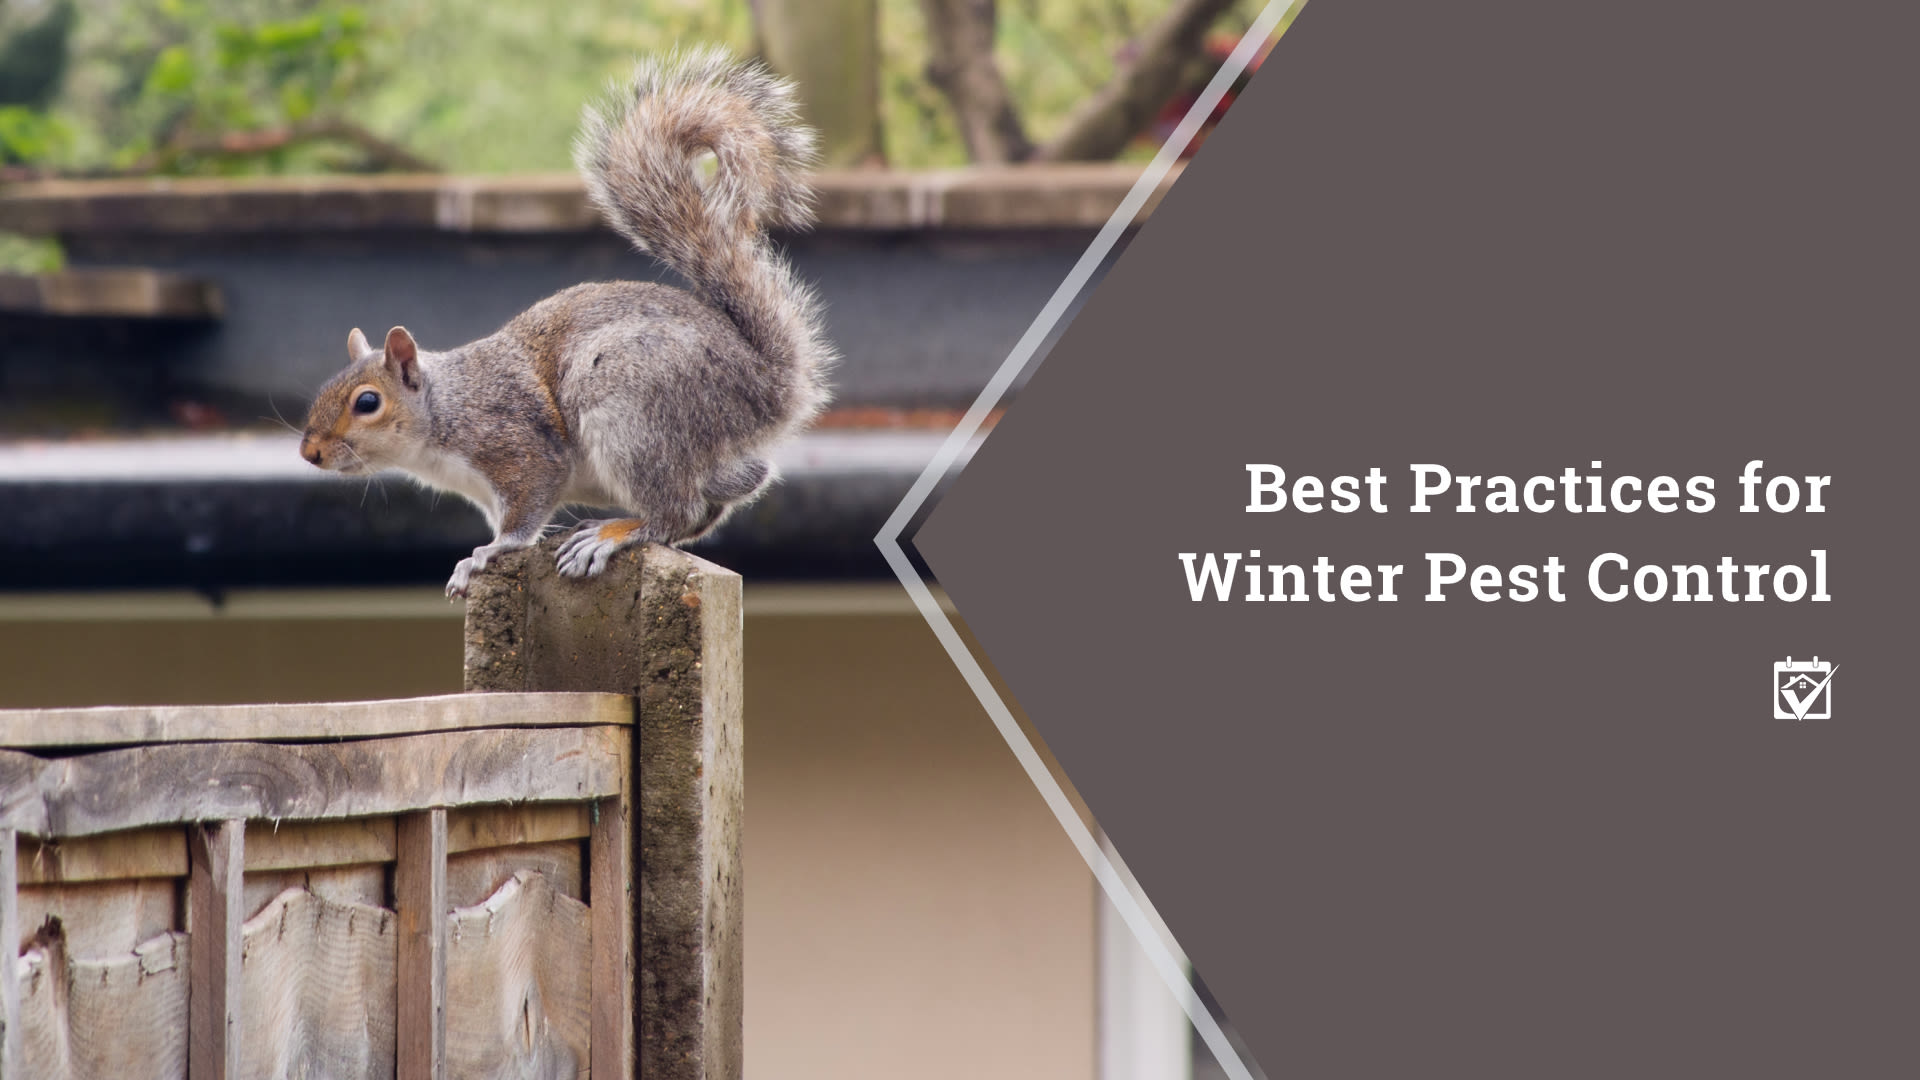 Keeping Unwanted Pests Out During the Colder Months